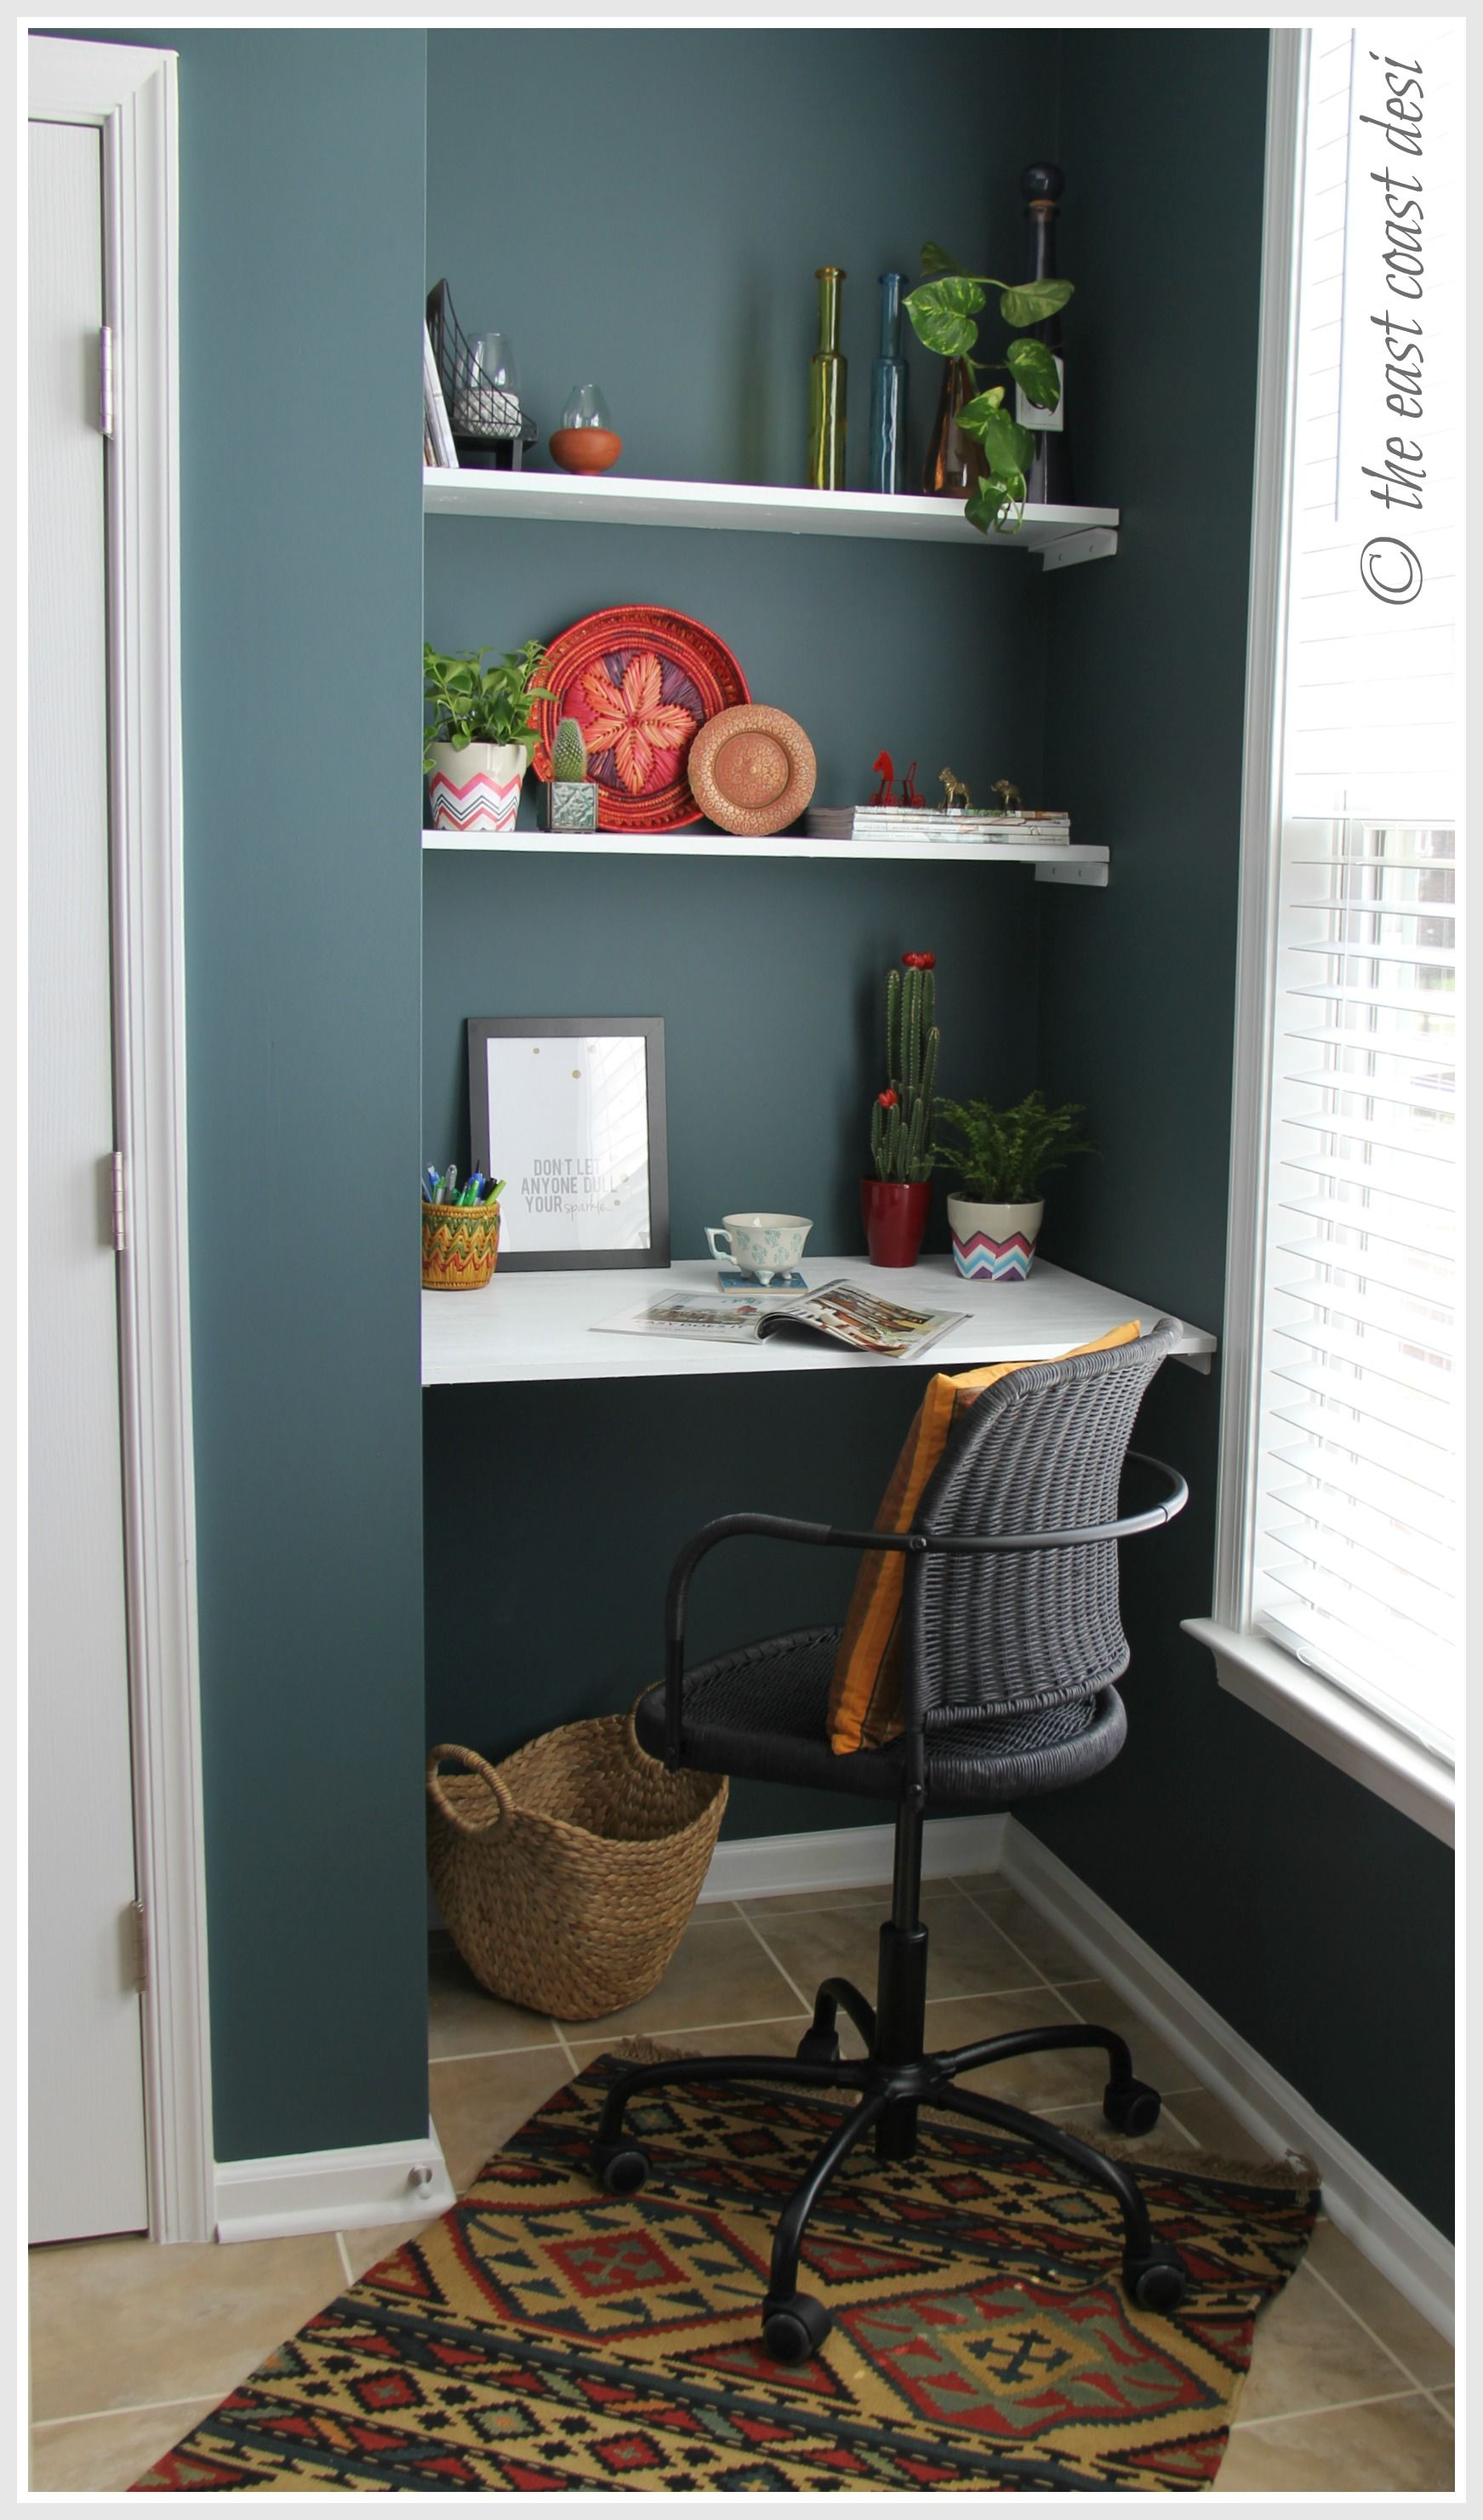 Small Desk Options Niche Converted To A Mini Working Desk Diy Shelves Under